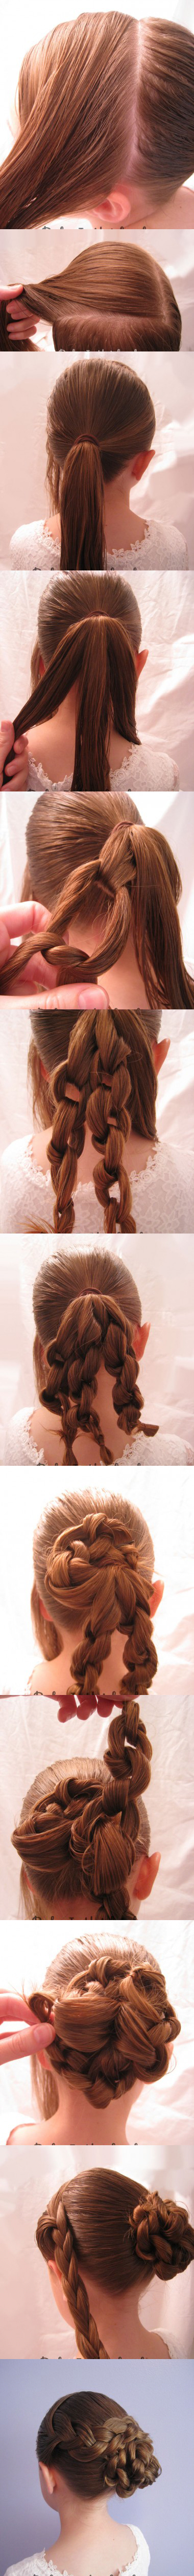 Oh-So-Simple-Bun-Hairstyles-Tutorials-Braided-Knotted-Bun